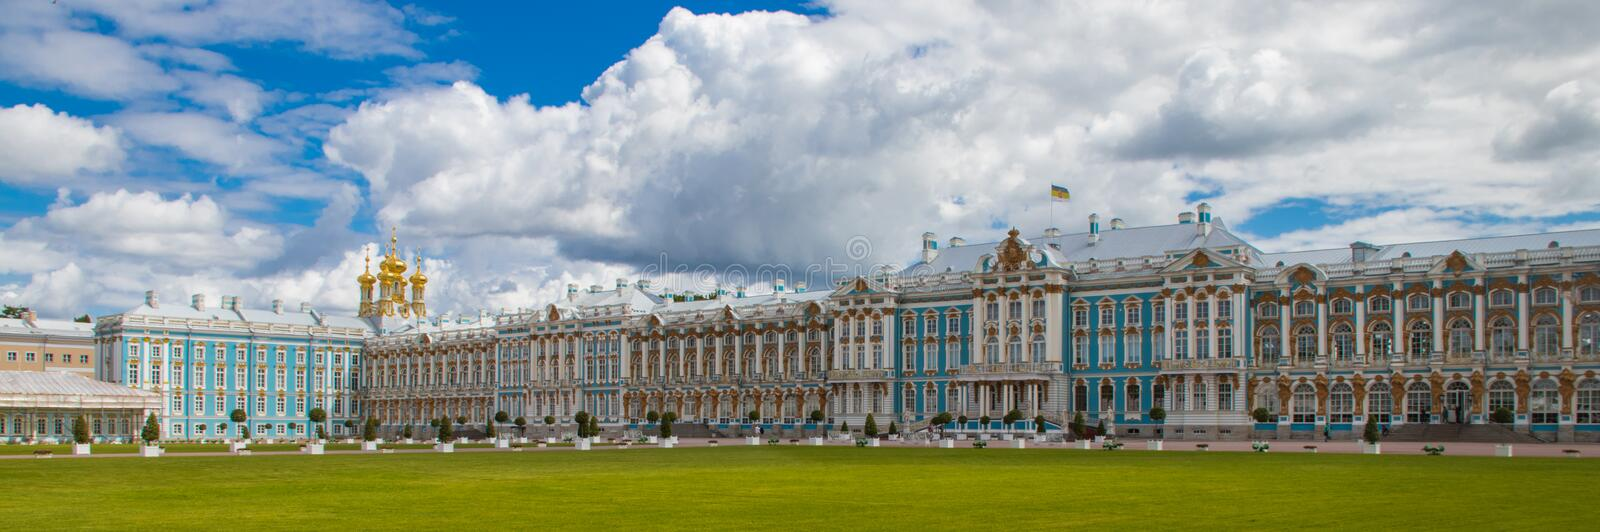 Exterior View of Catherine Palace in St. Petersburg royalty free stock photos